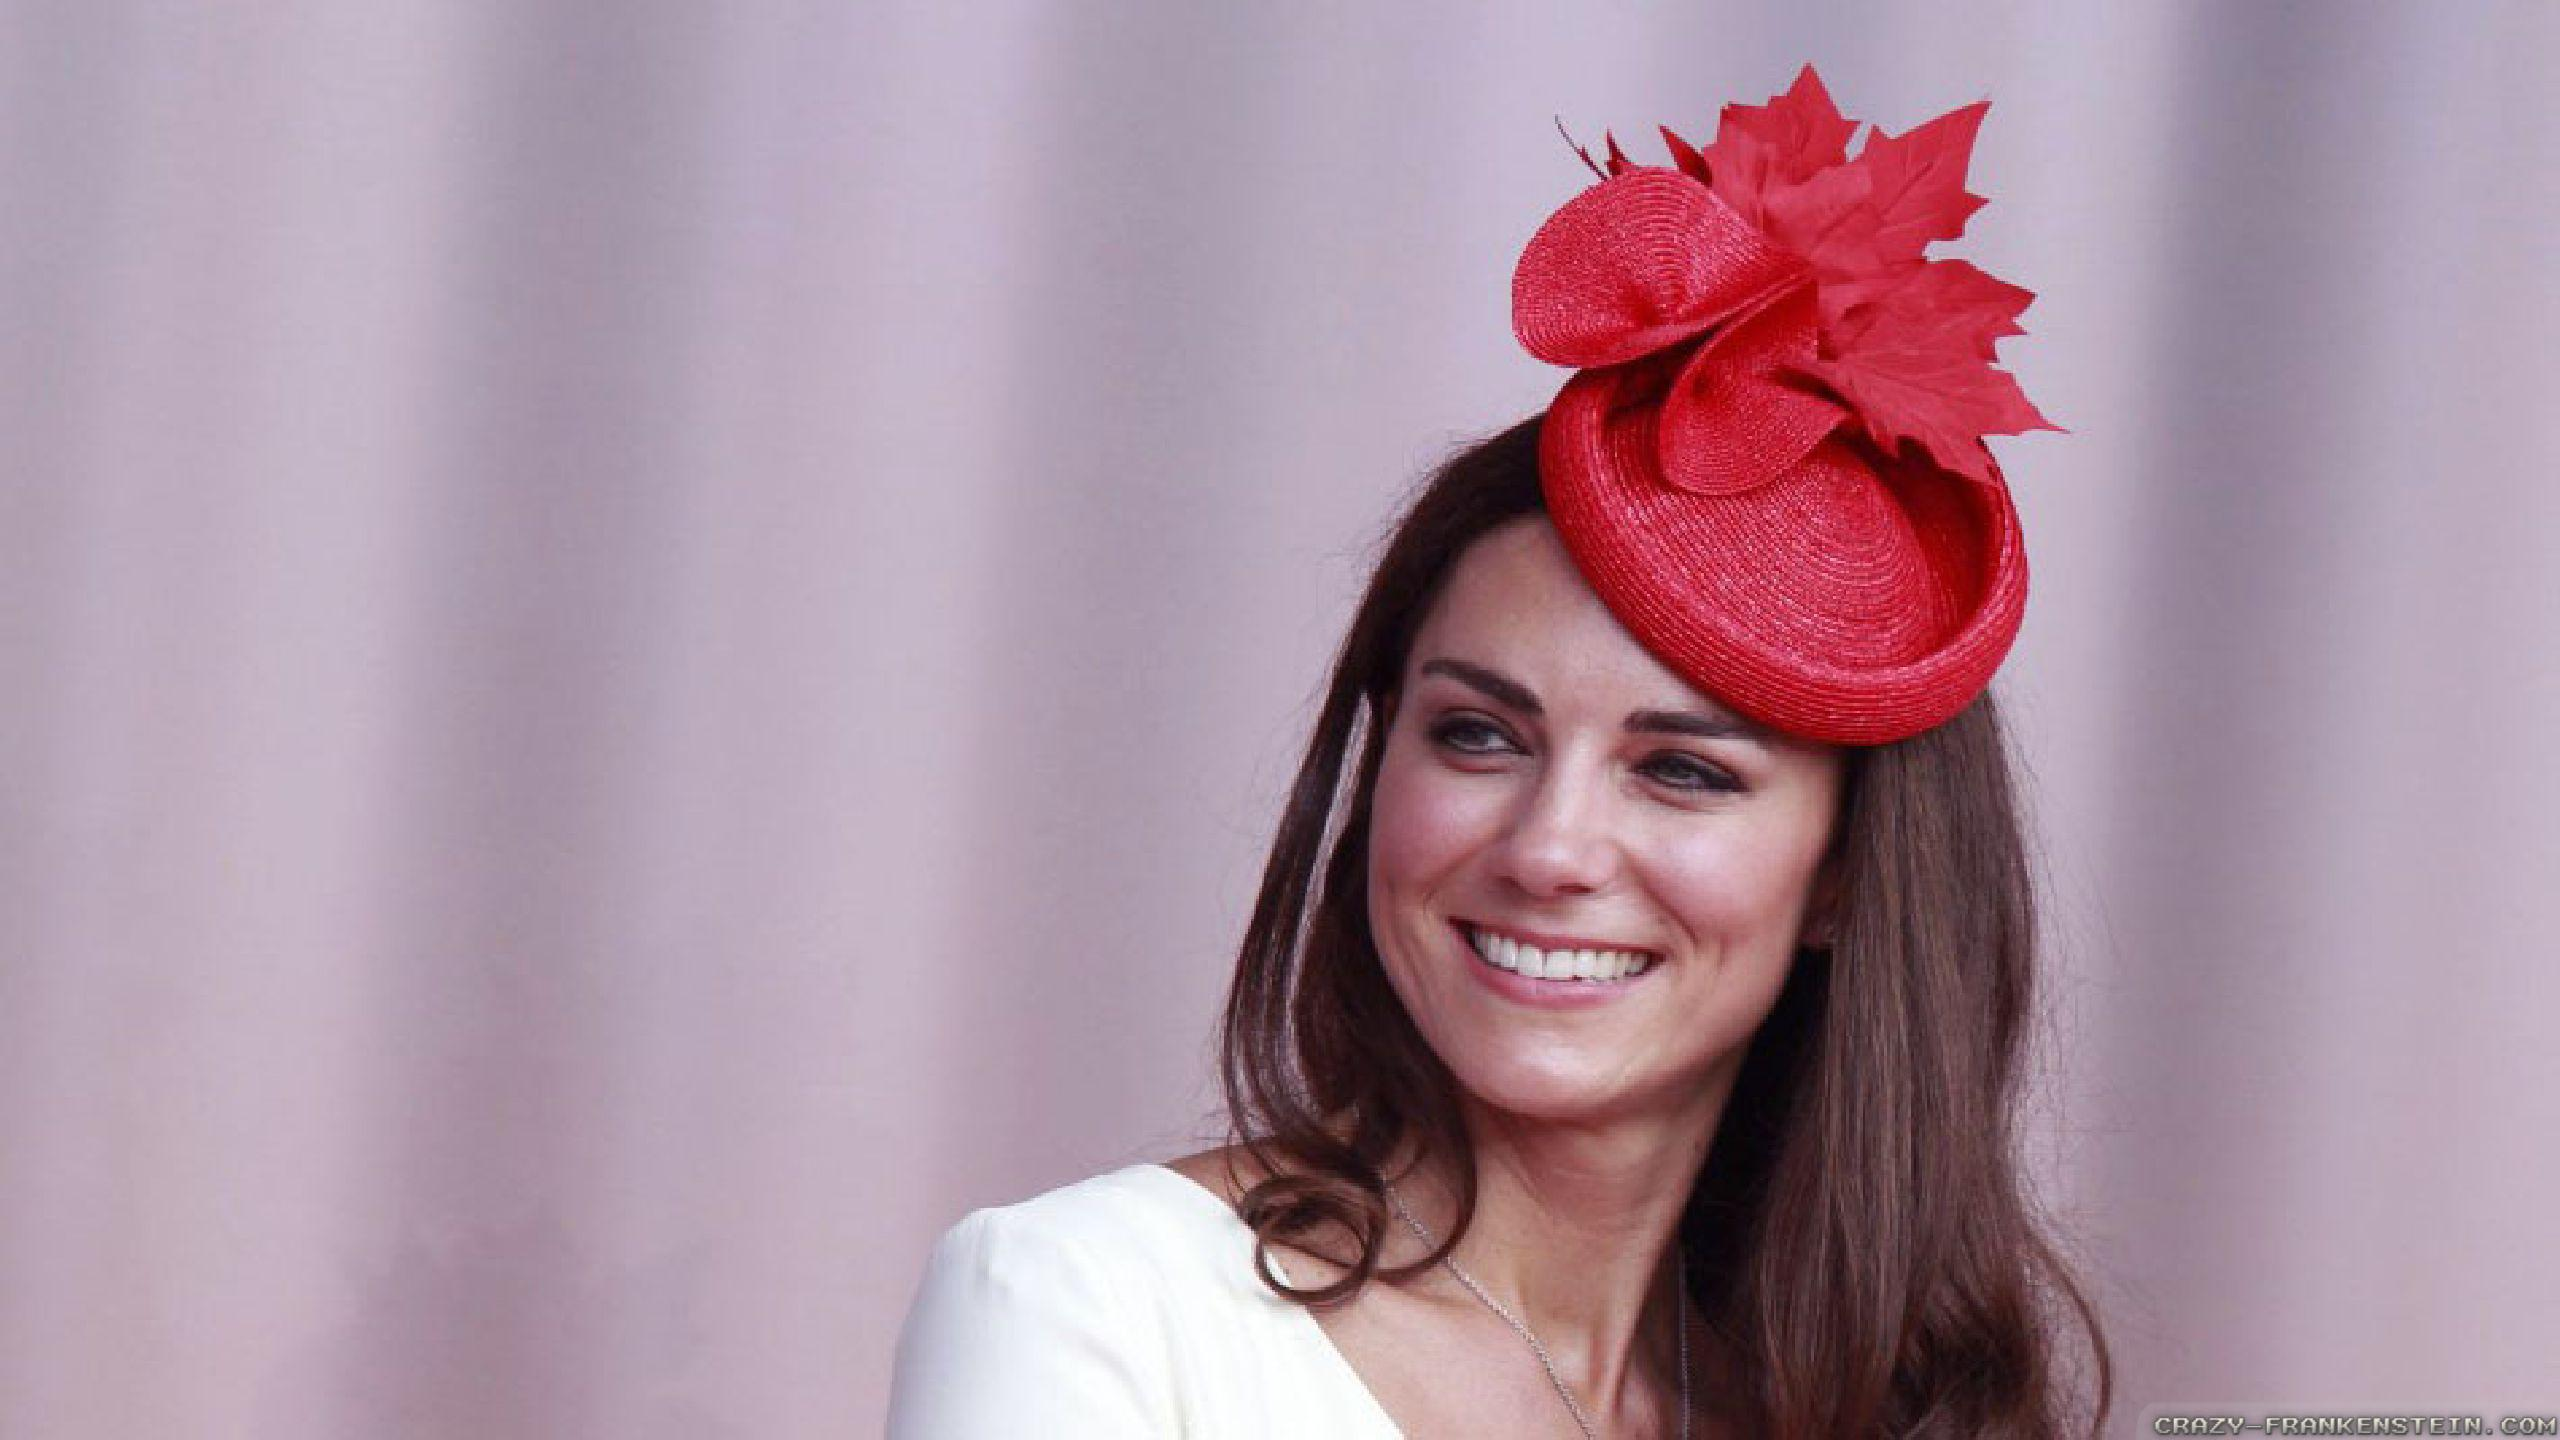 Catherine Elizabeth Middleton Wallpaper 25   2560 X 1440 stmednet 2560x1440